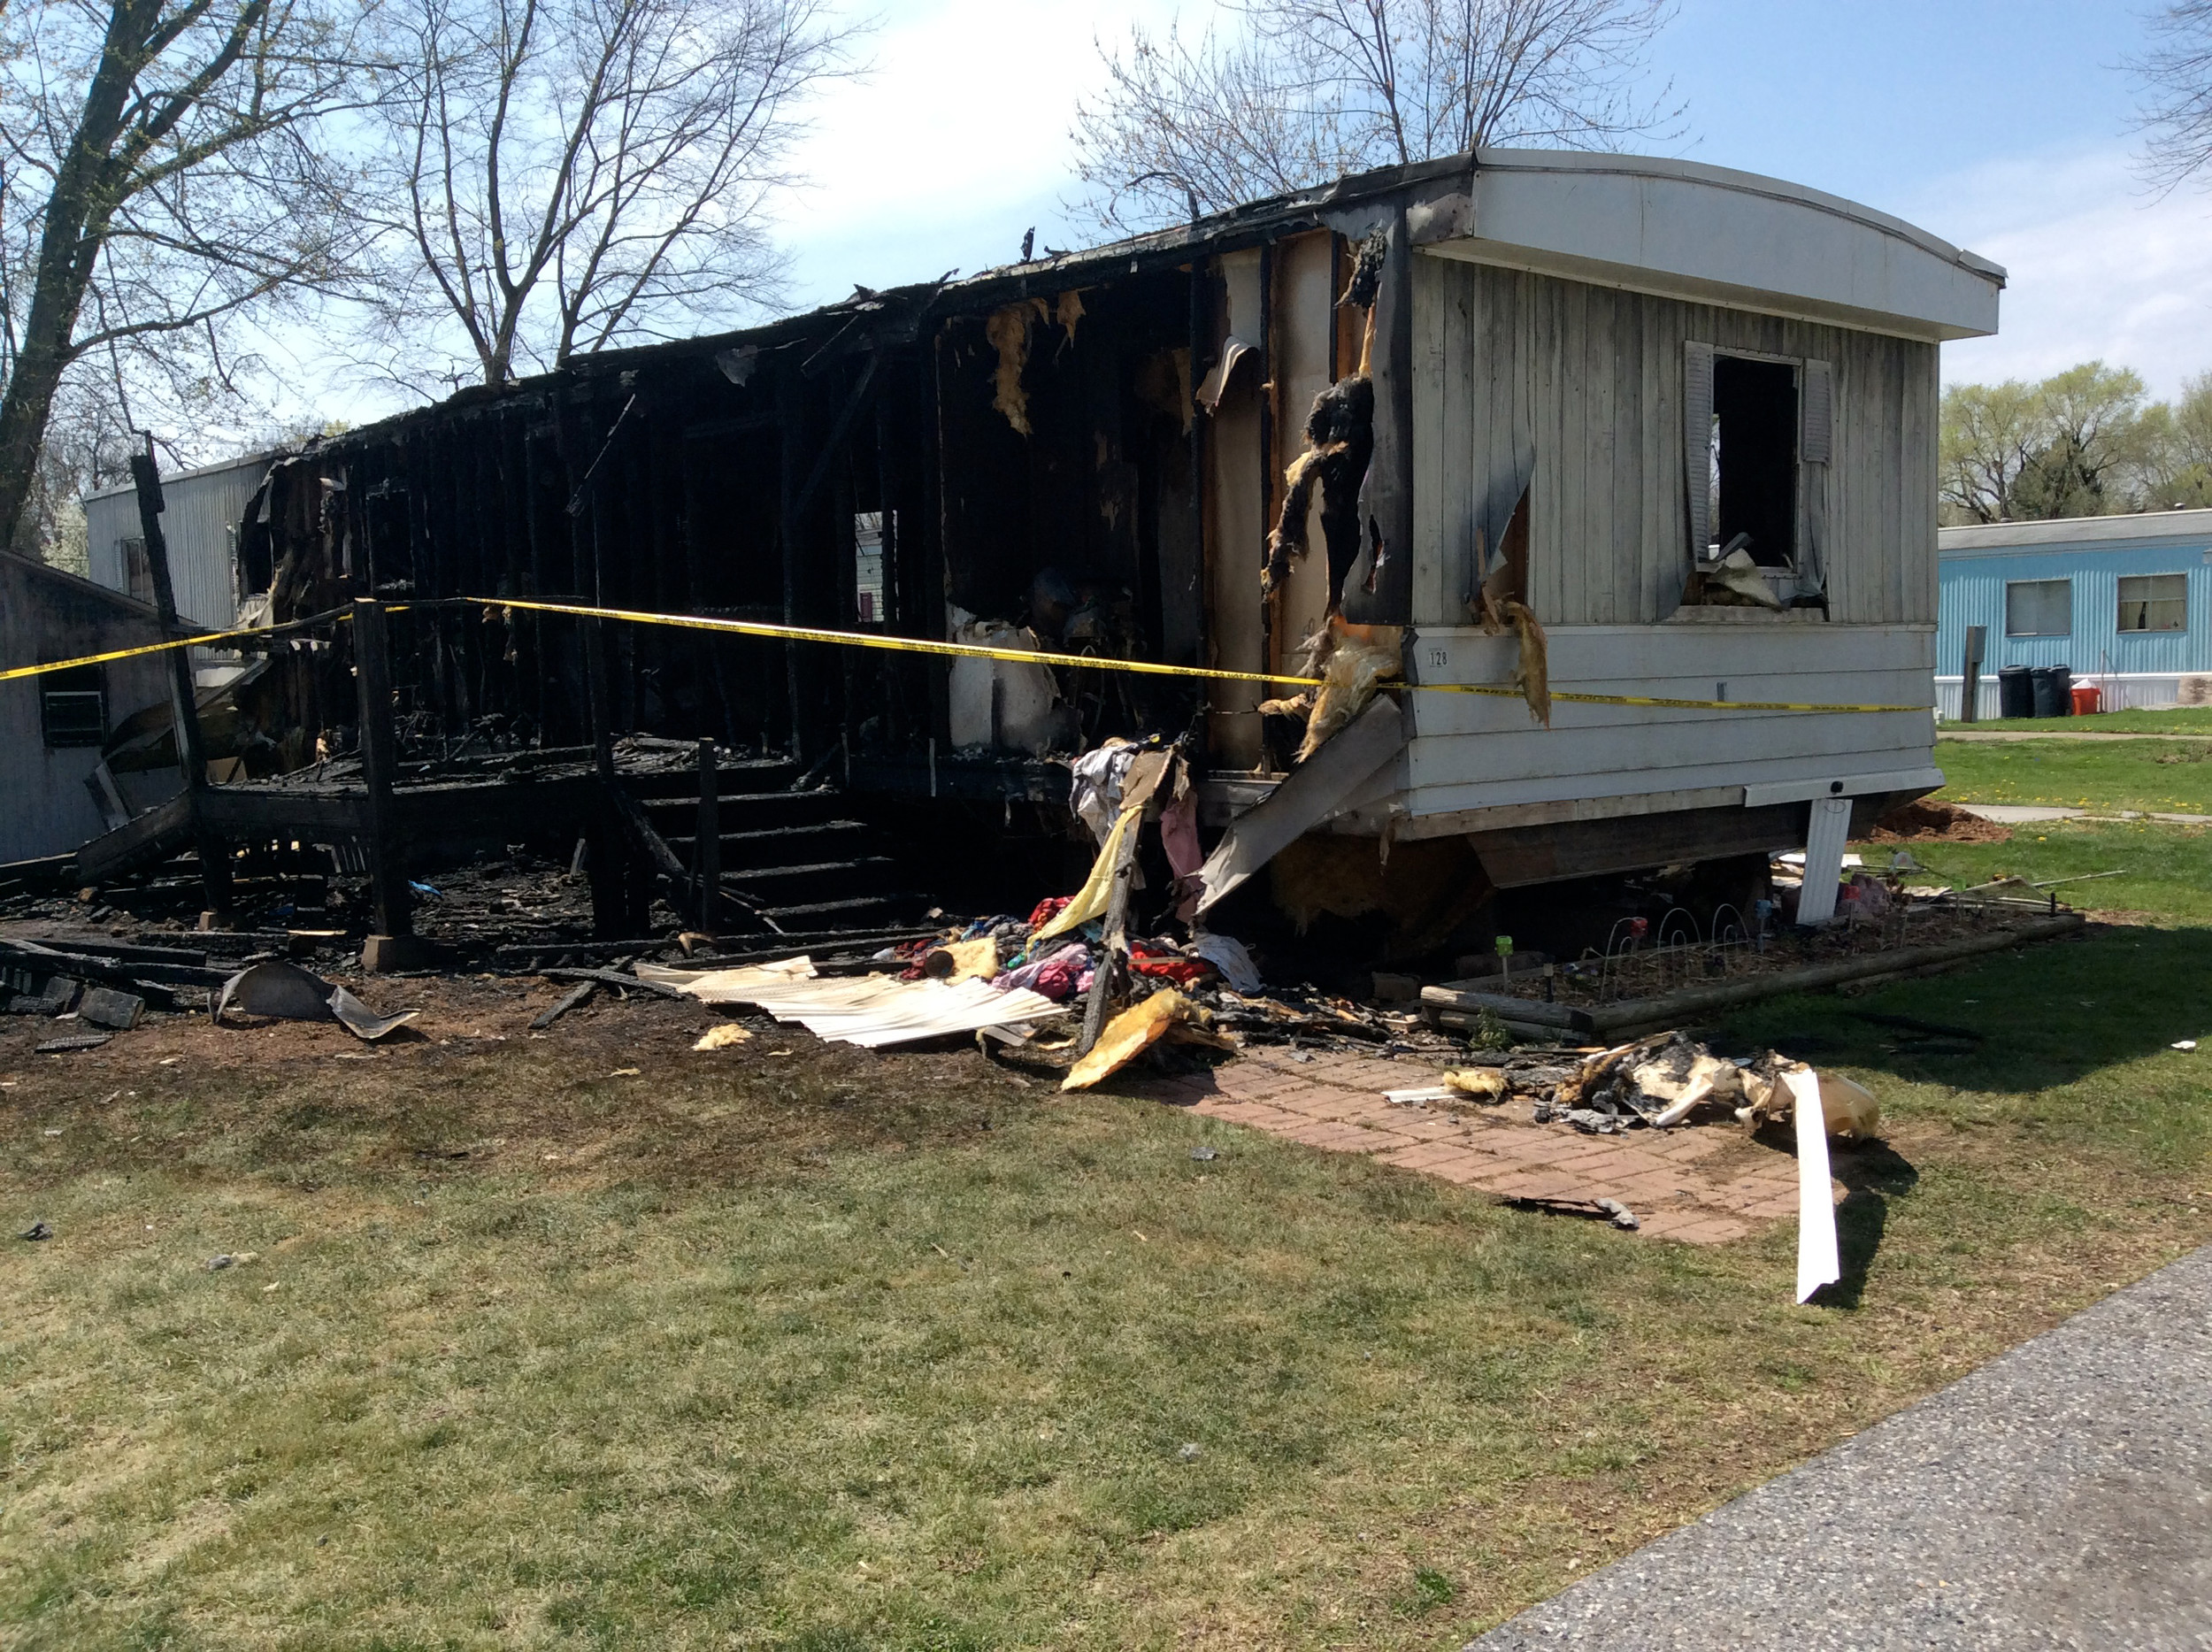 Fire damaged this mobile home in Harborton Place in Middletown on Wednesday night, April 12. The home was vacant at the time of the fire, said borough Assistant Fire Chief Kenny Whitebread.